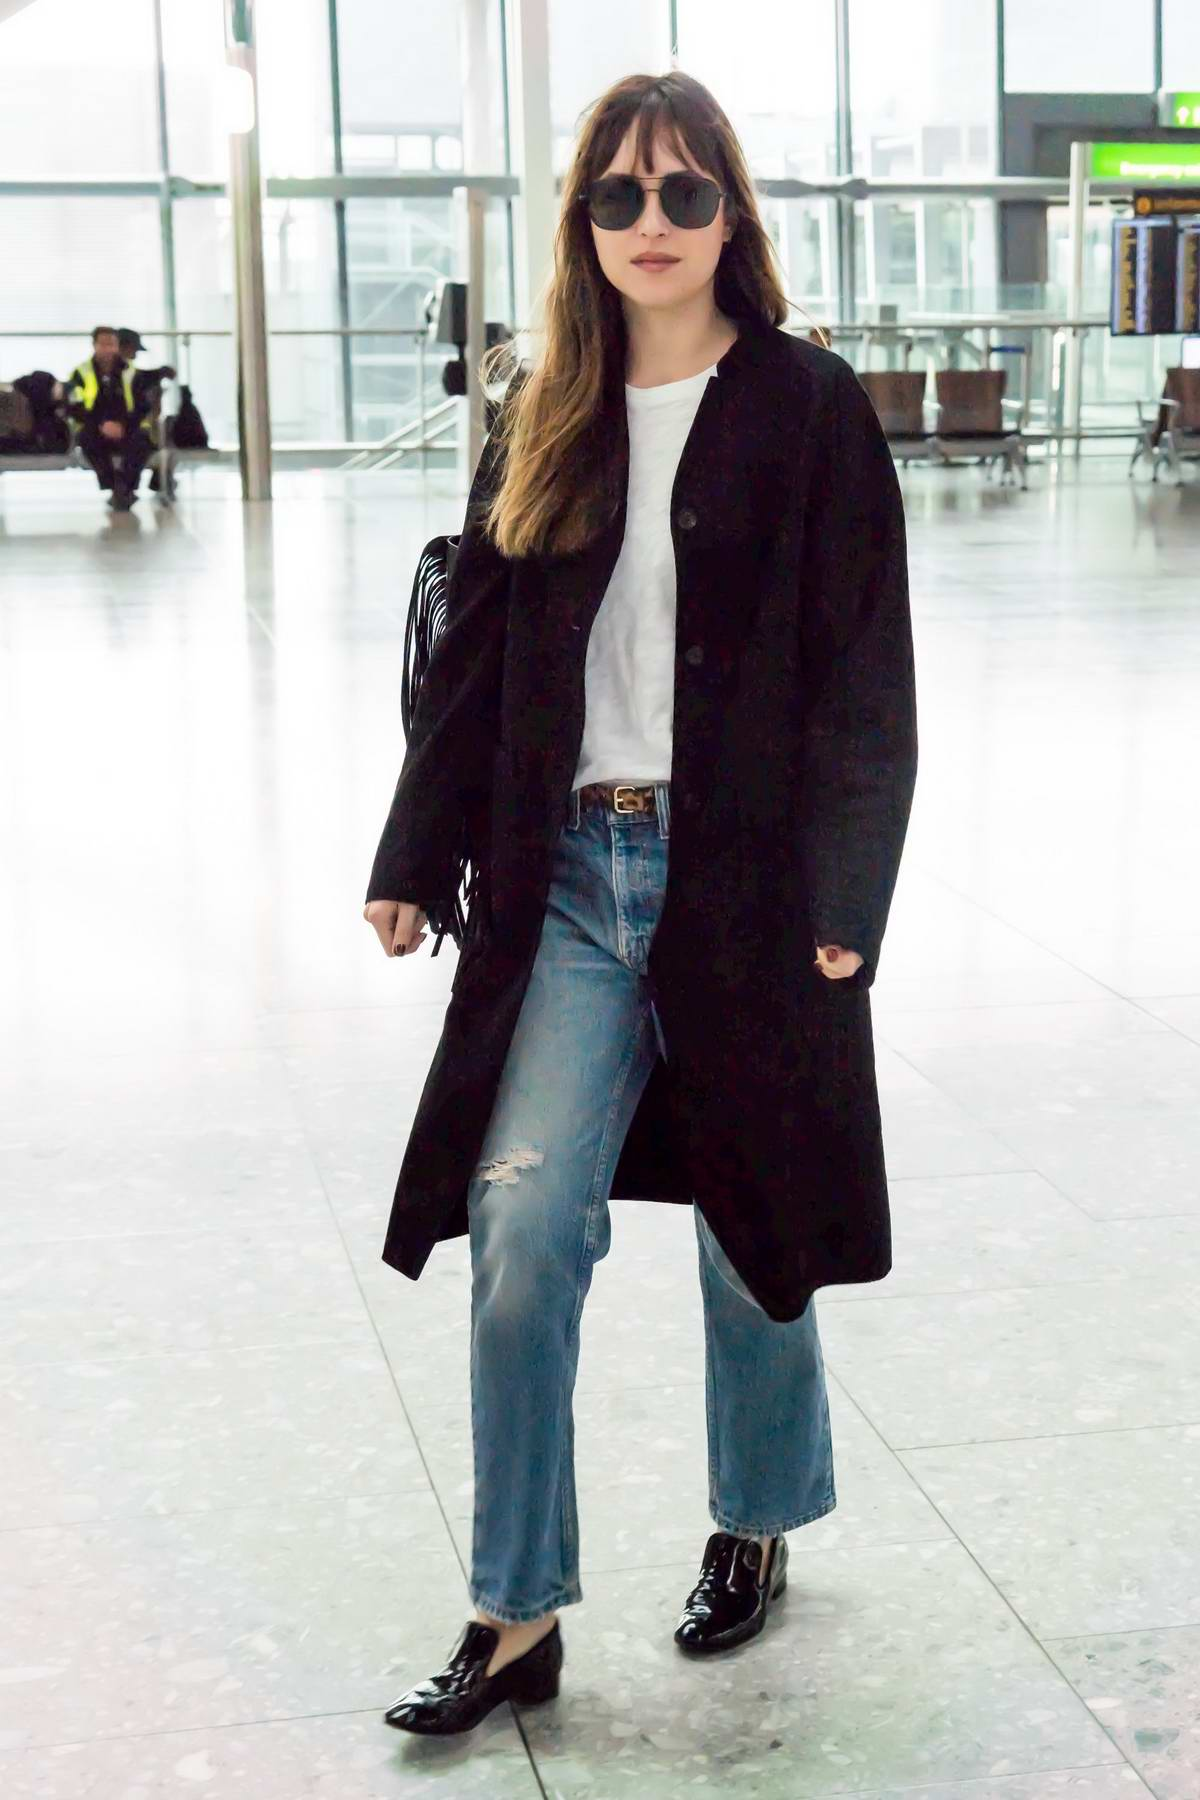 Dakota Johnson spotted at Heathrow Airport as she arrives to catch a flight out of London, UK